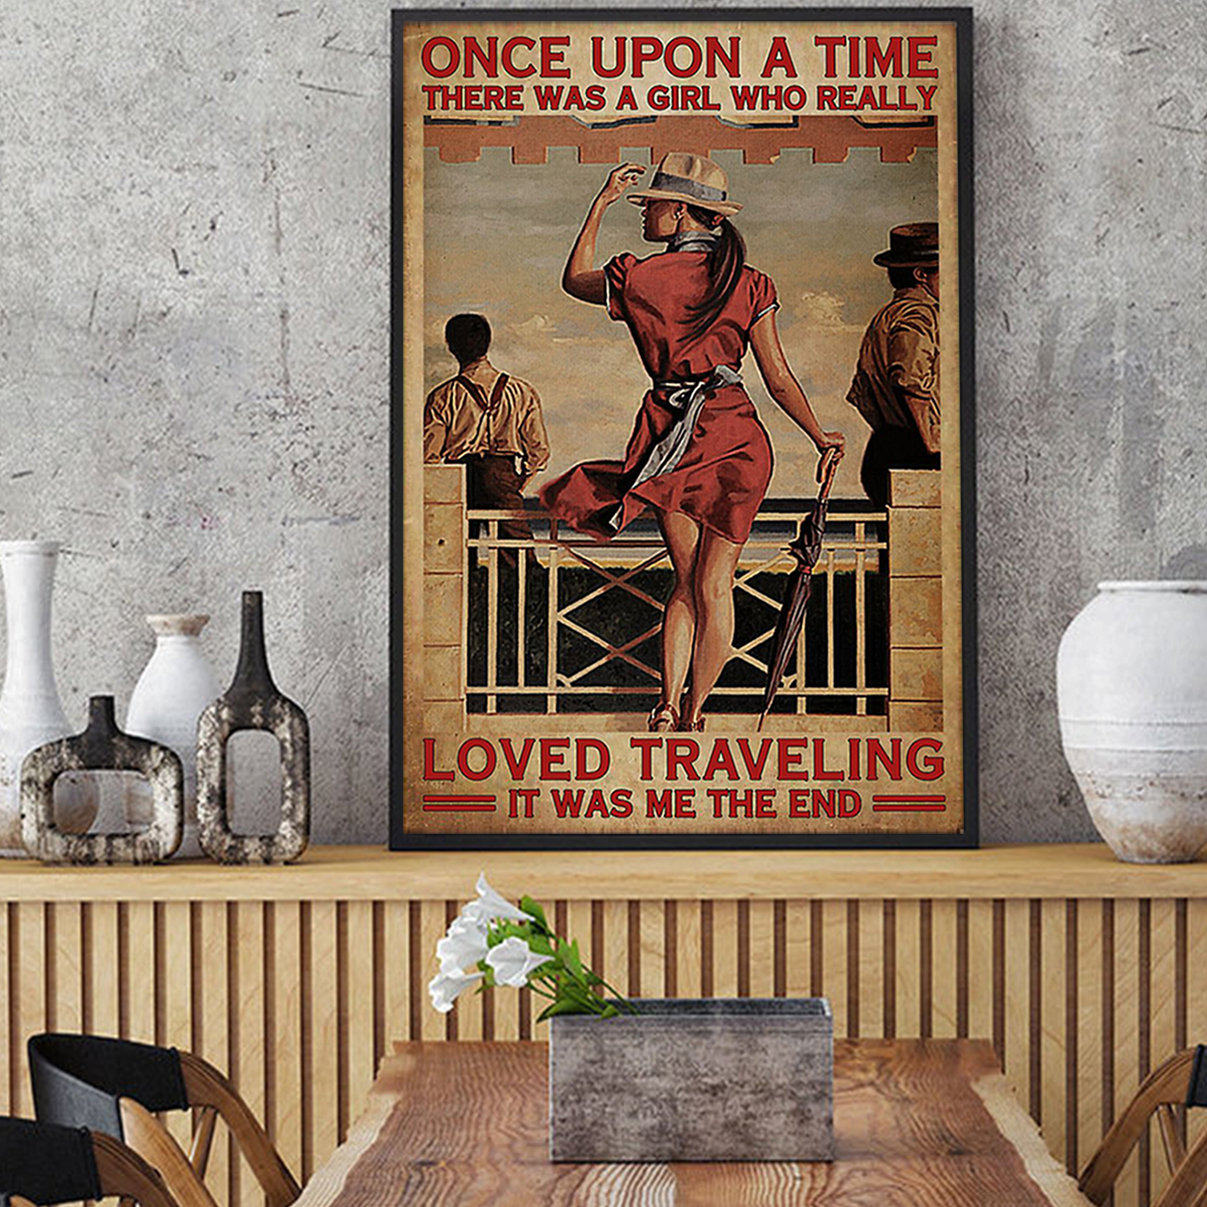 Once Upon A Time There Was A Girl Who Really Loved Traveling Poster A2